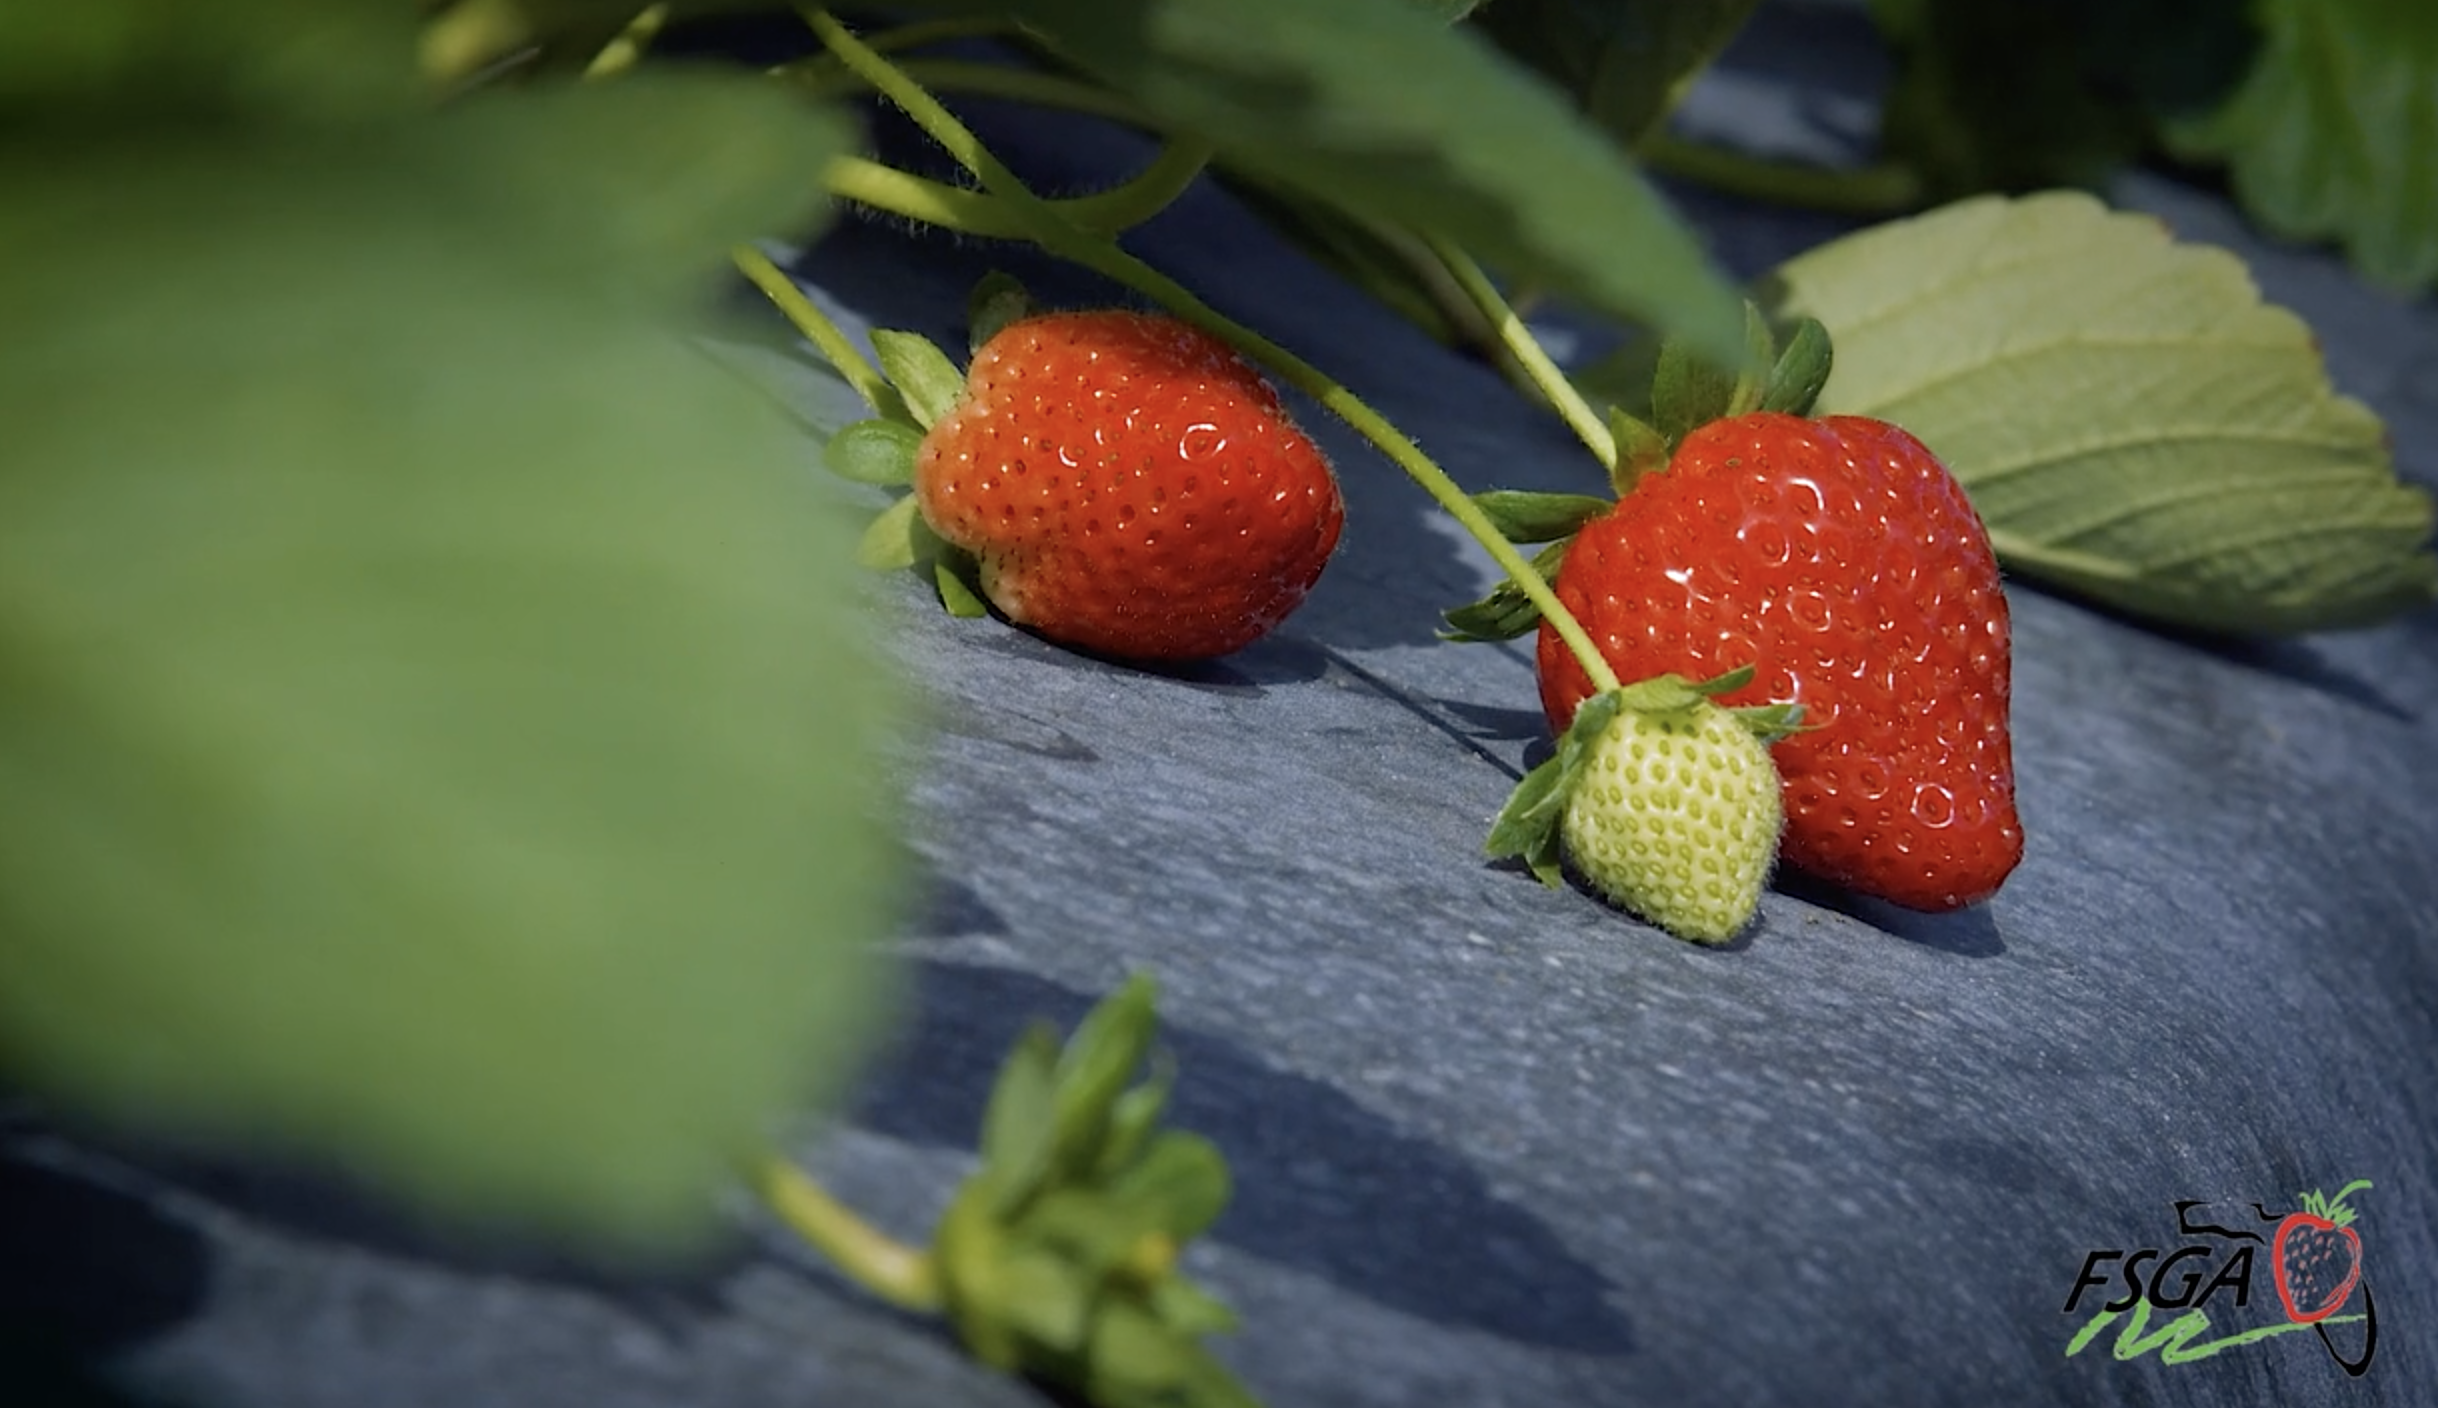 FSGA Behind-the-Scenes: Strawberry Varieties